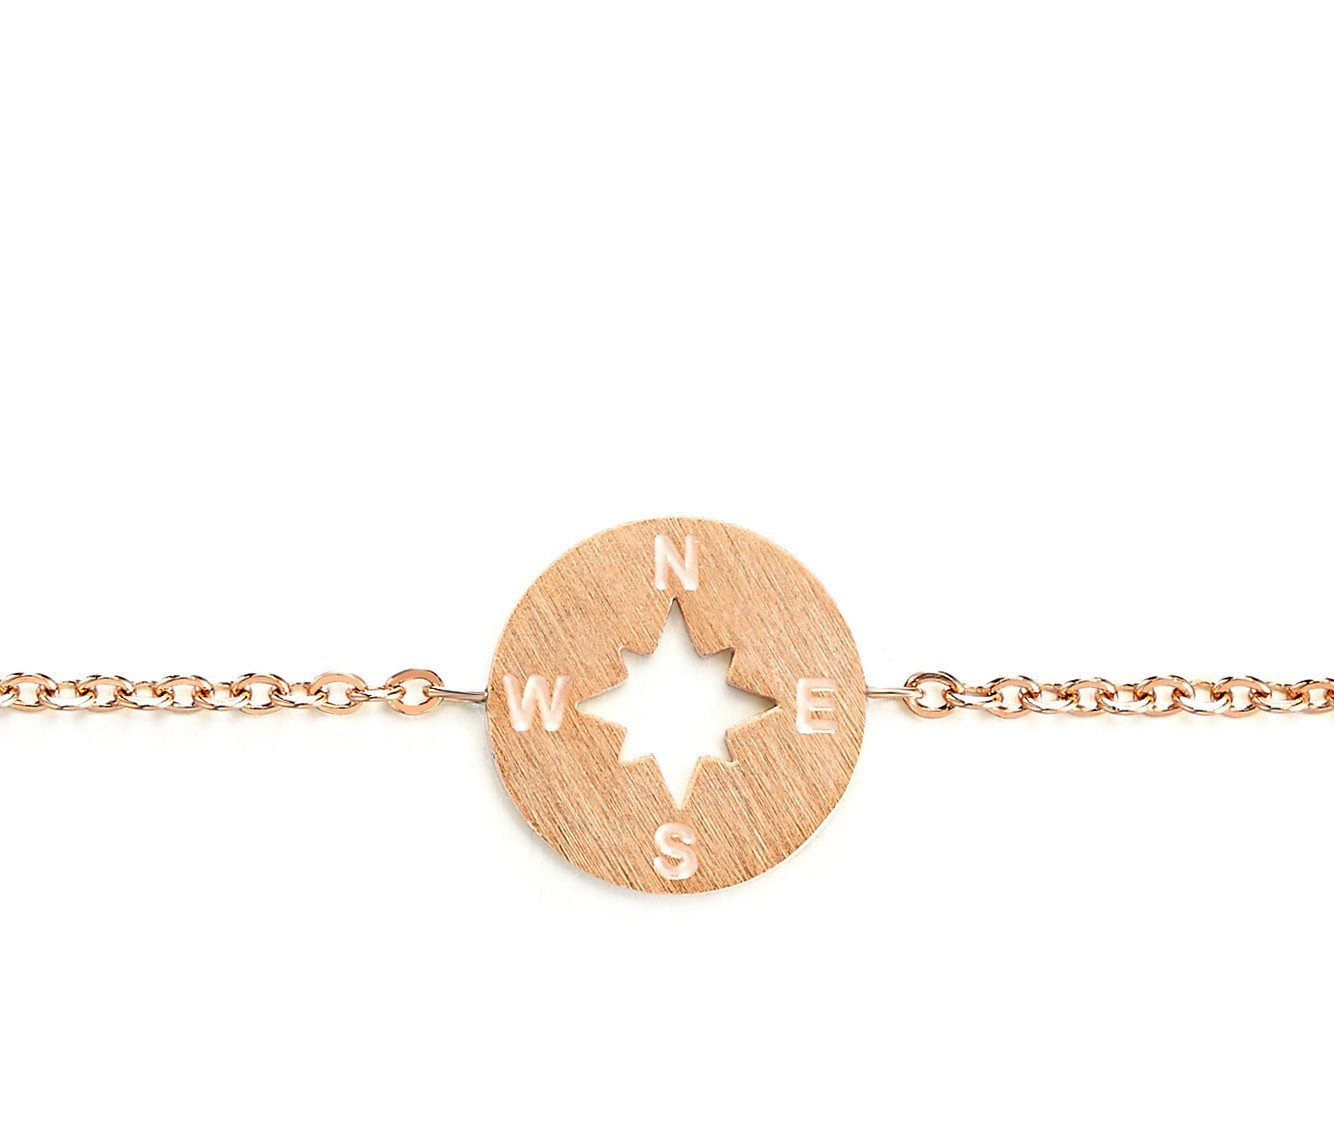 Rosa Vila Compass Bracelet - Direction of Life & I'd Be Lost Without You, Woman's Friendship Bracelets for Bridesmaids or Best Friends (Rose Gold Tone)